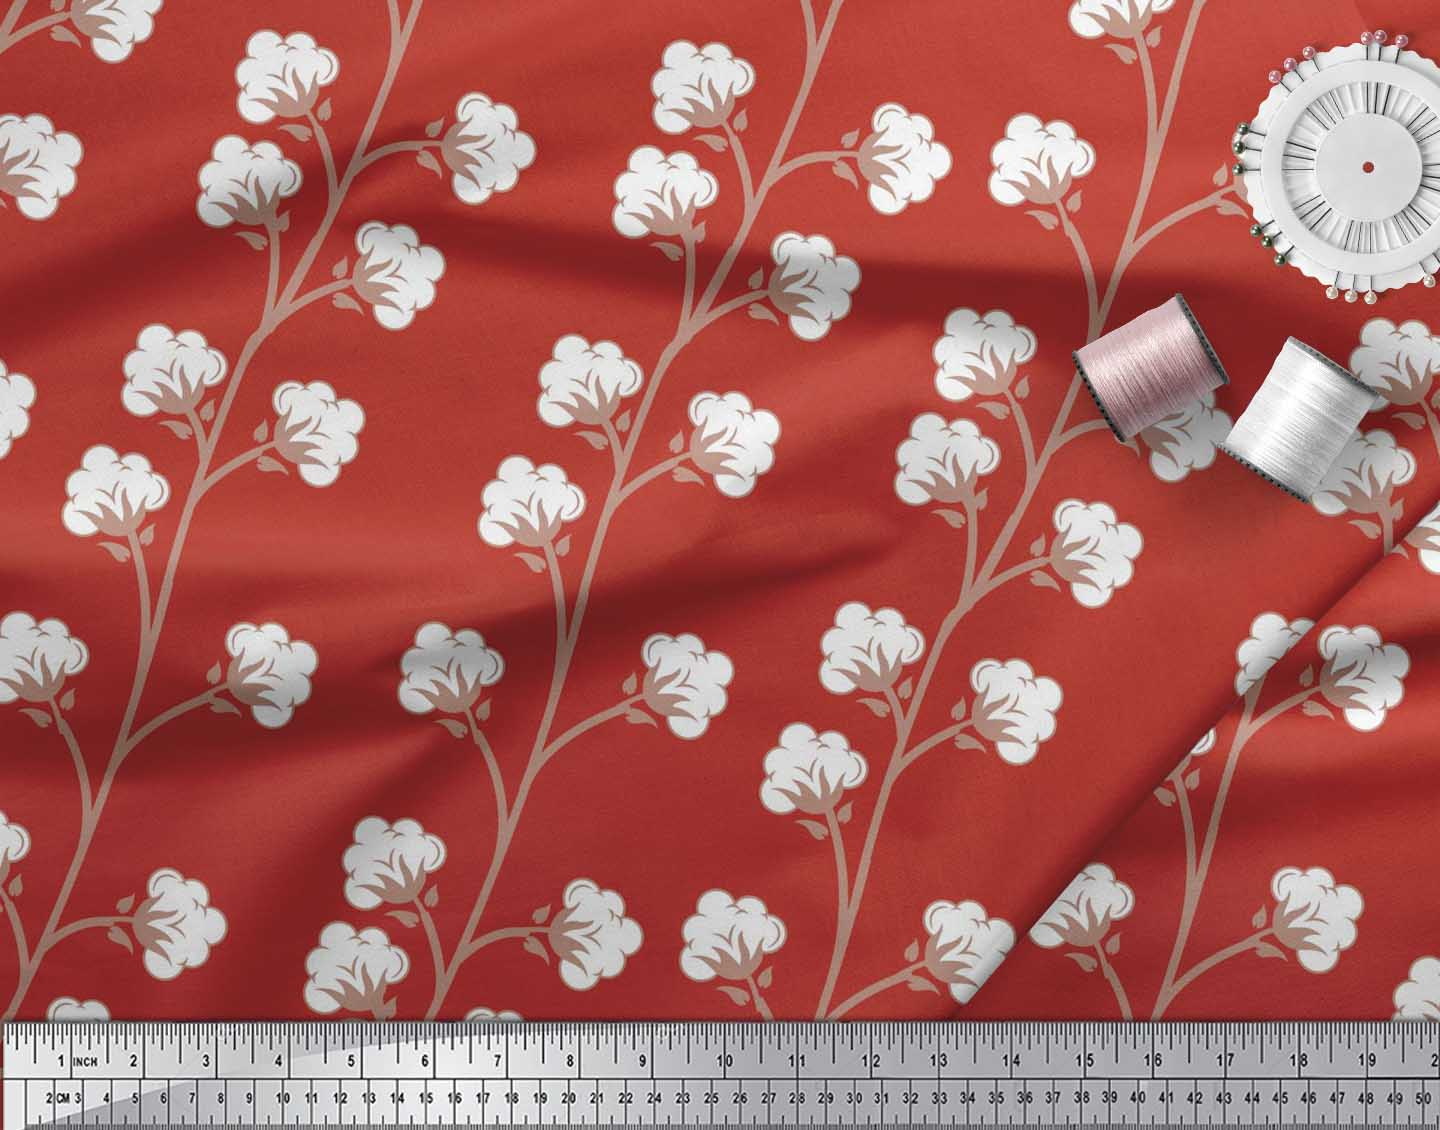 Soimoi-Cotton-Poplin-Fabric-Cotton-Ball-Floral-Fabric-Prints-By-0x3 thumbnail 4